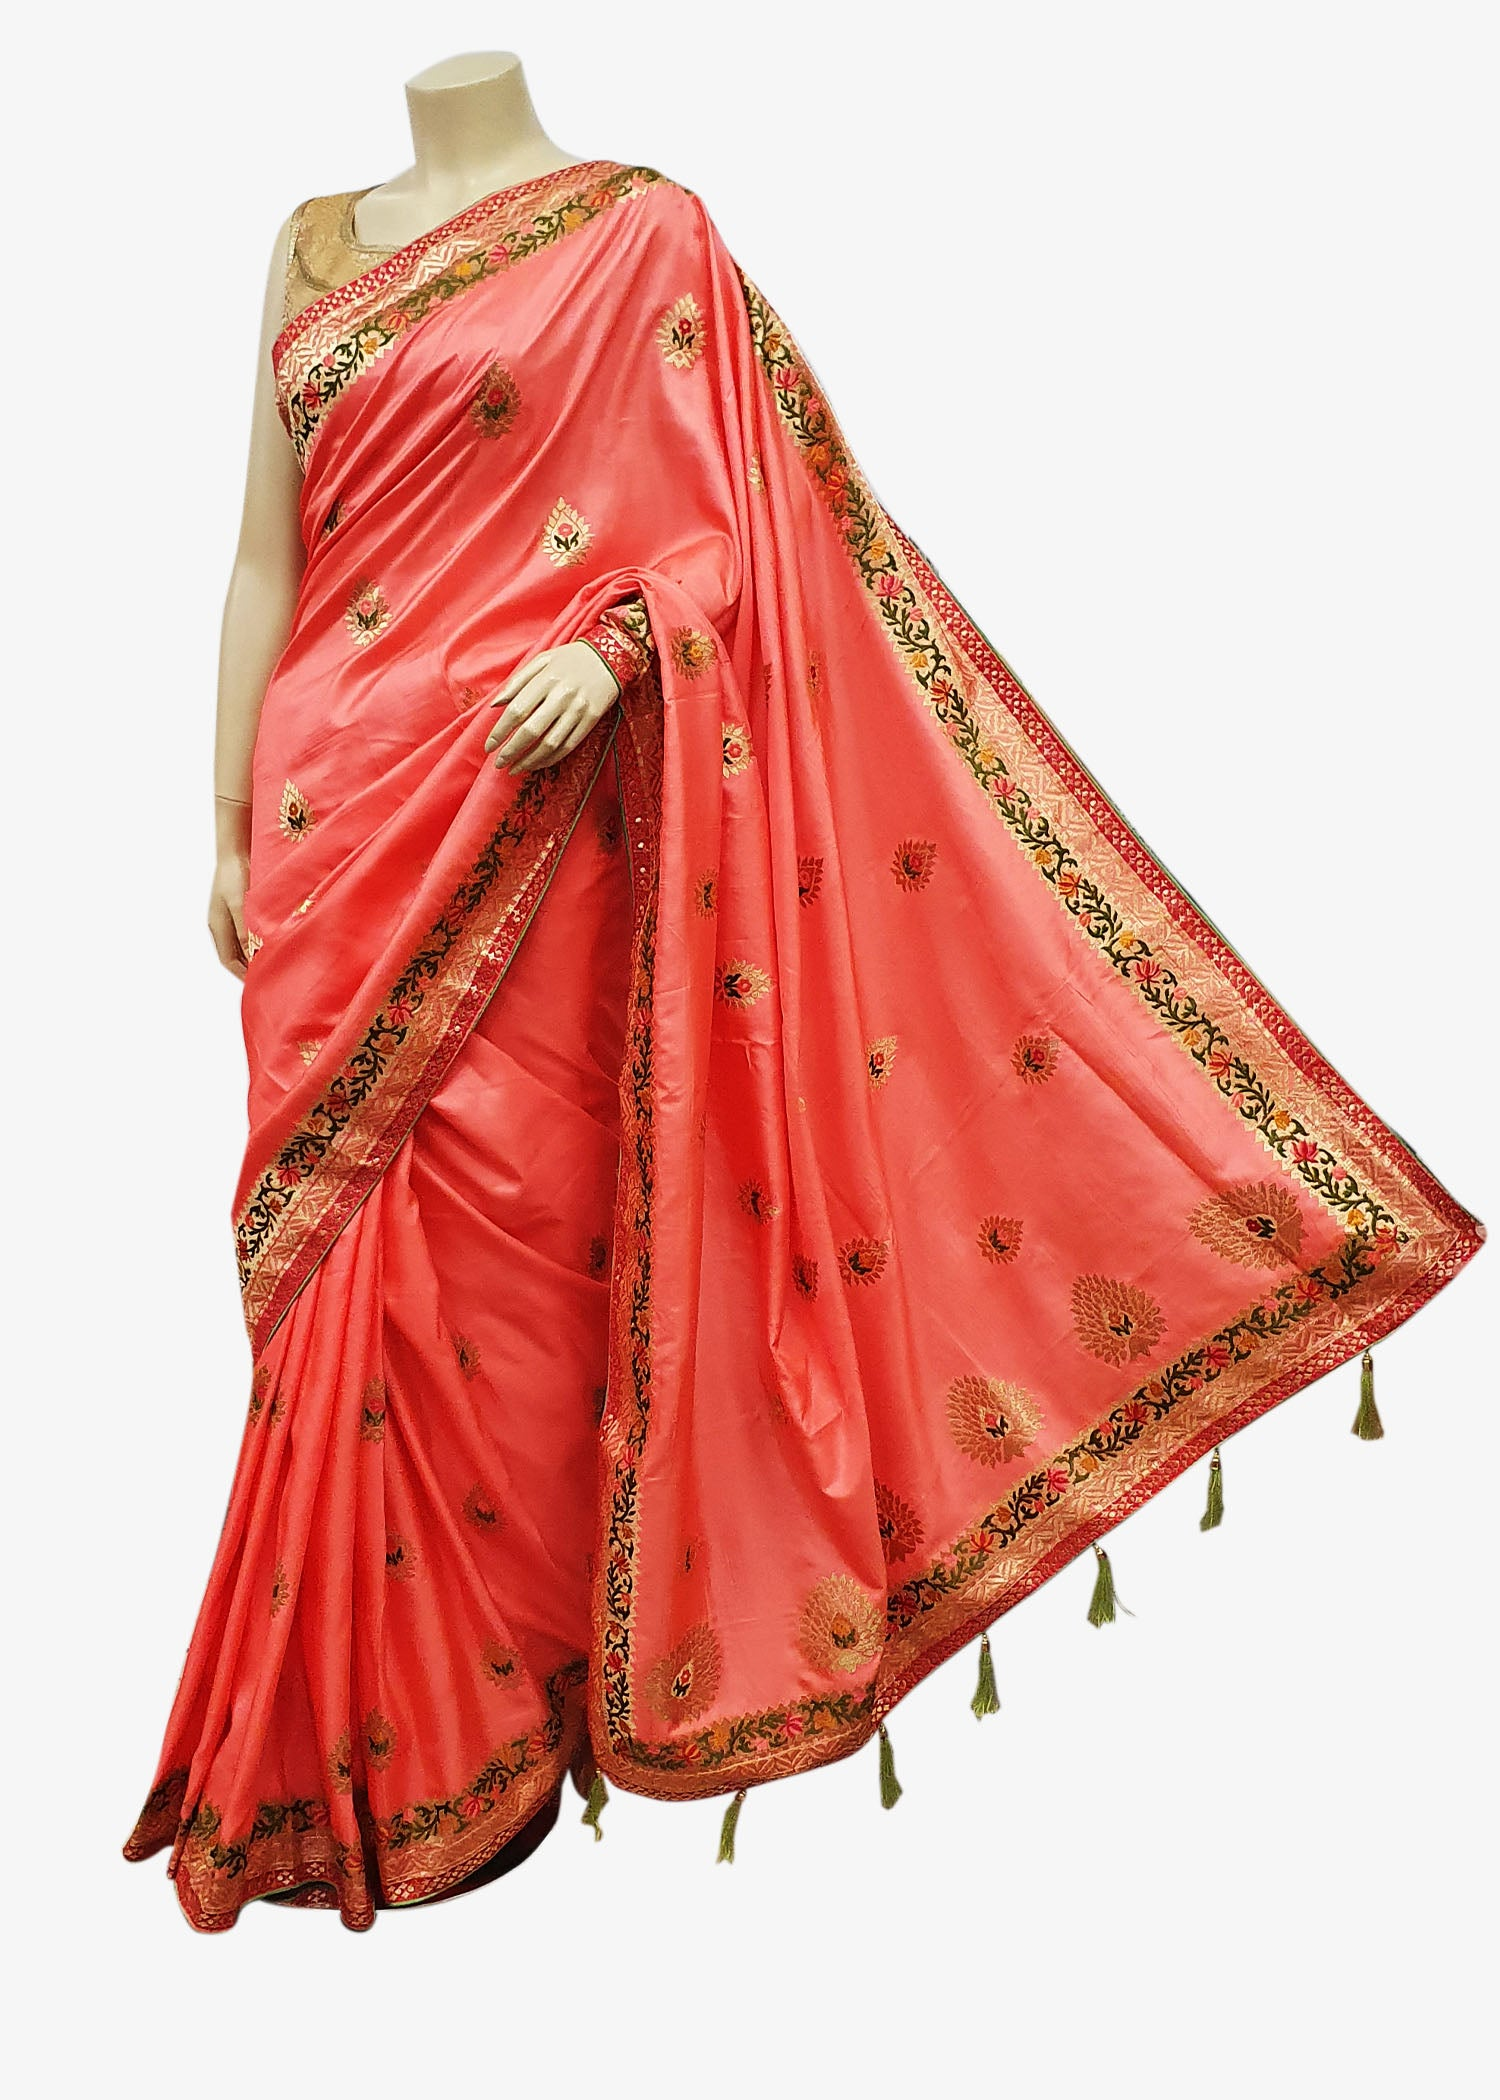 Pink Shaded Art Silk Saree With Resham Zari Embroidery